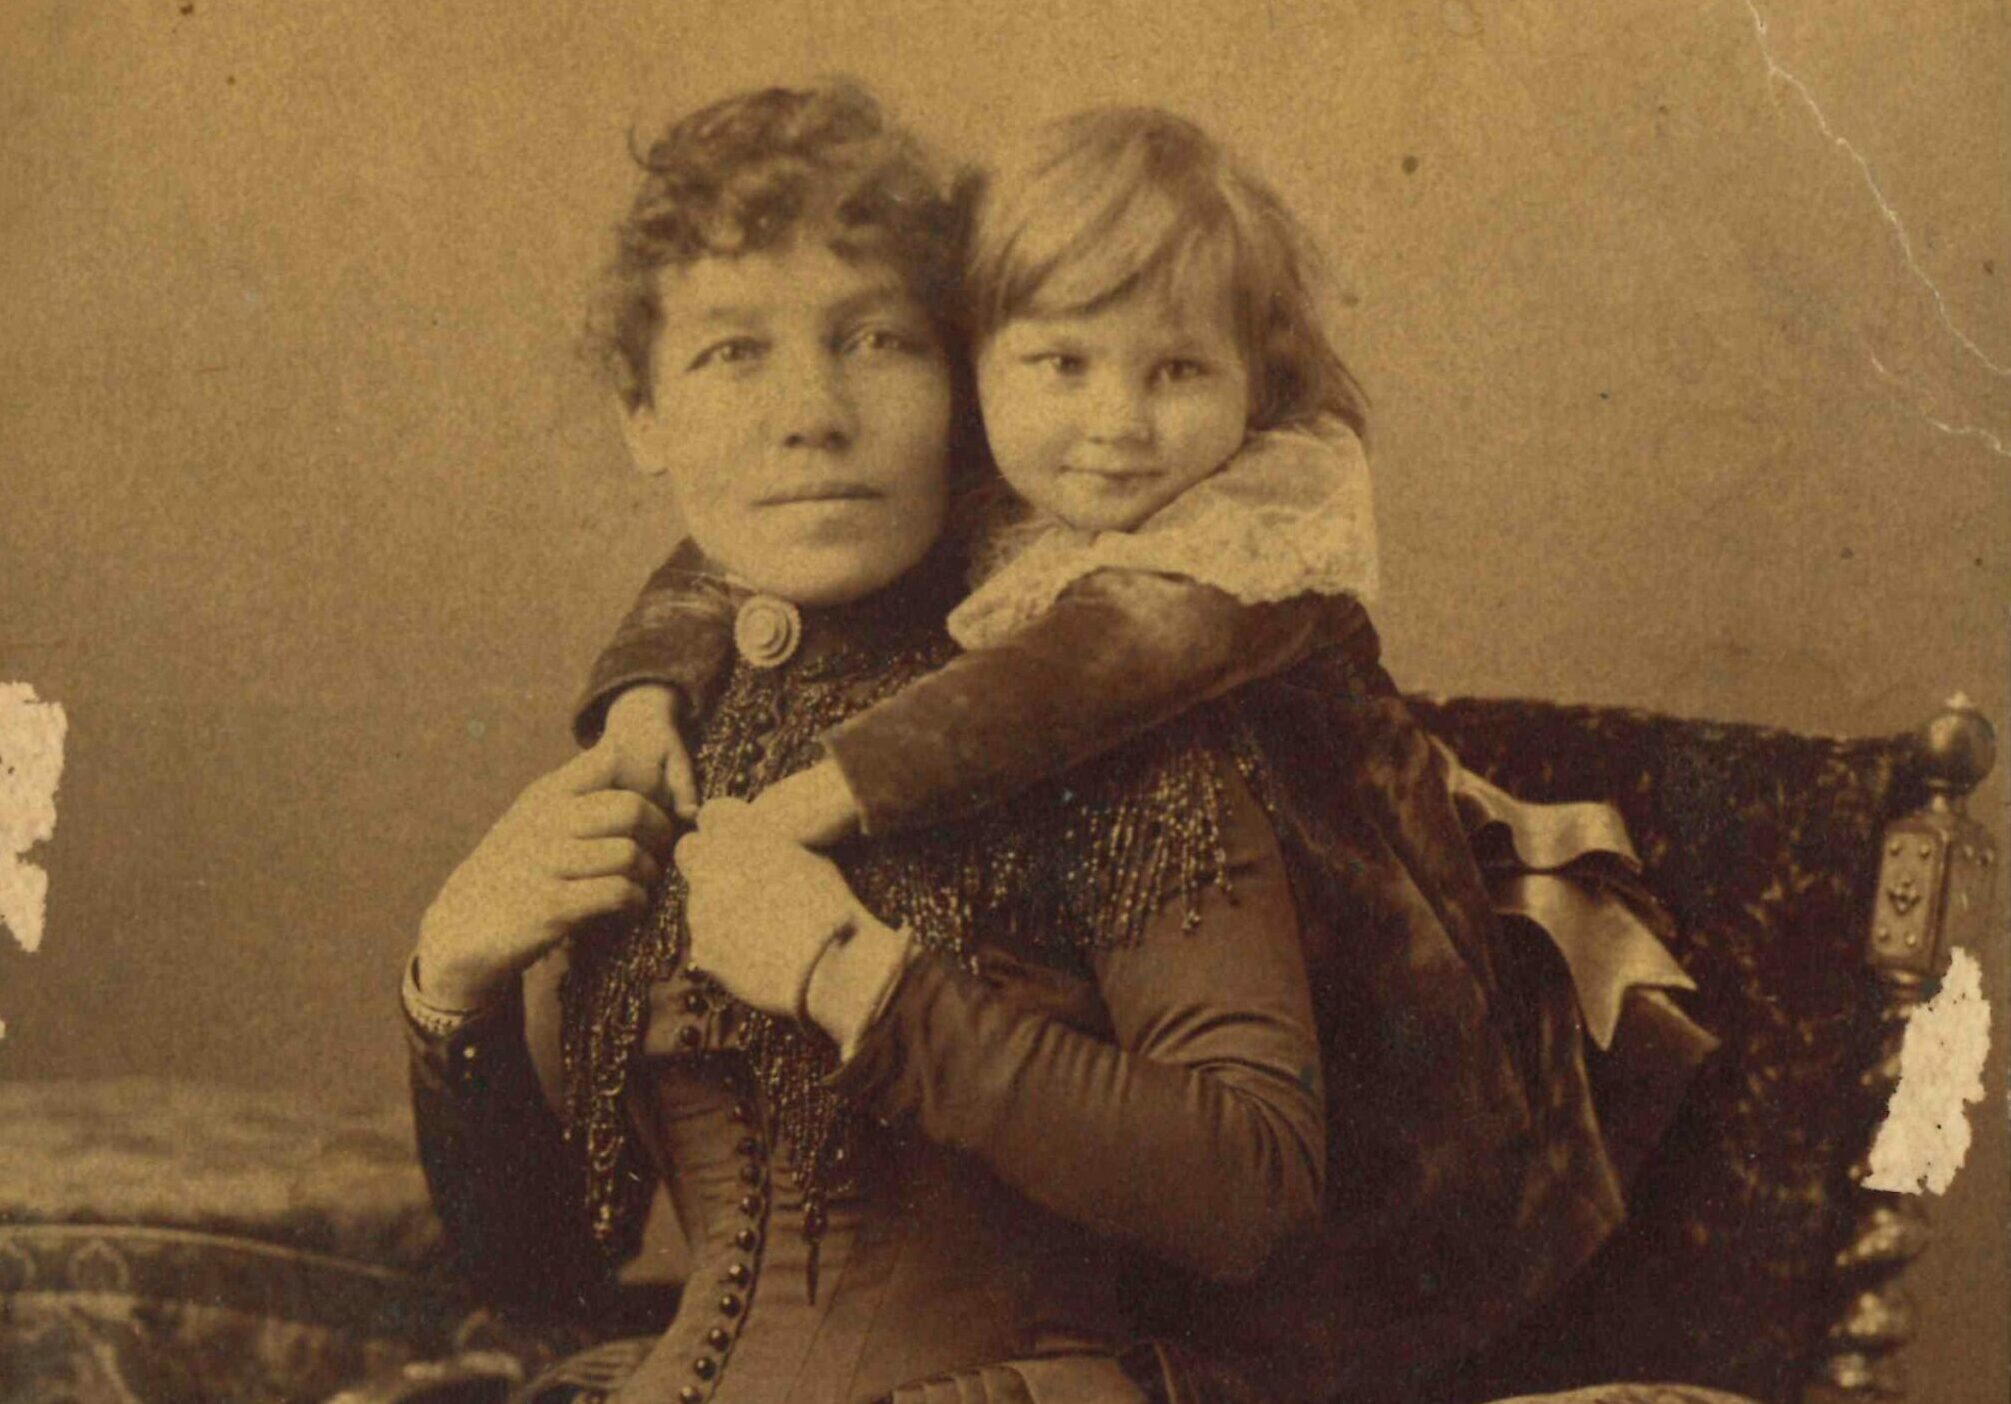 Photo of Isabella Lougheed with their eldest son, Clarence, at approximately 2 years old, c.1887.